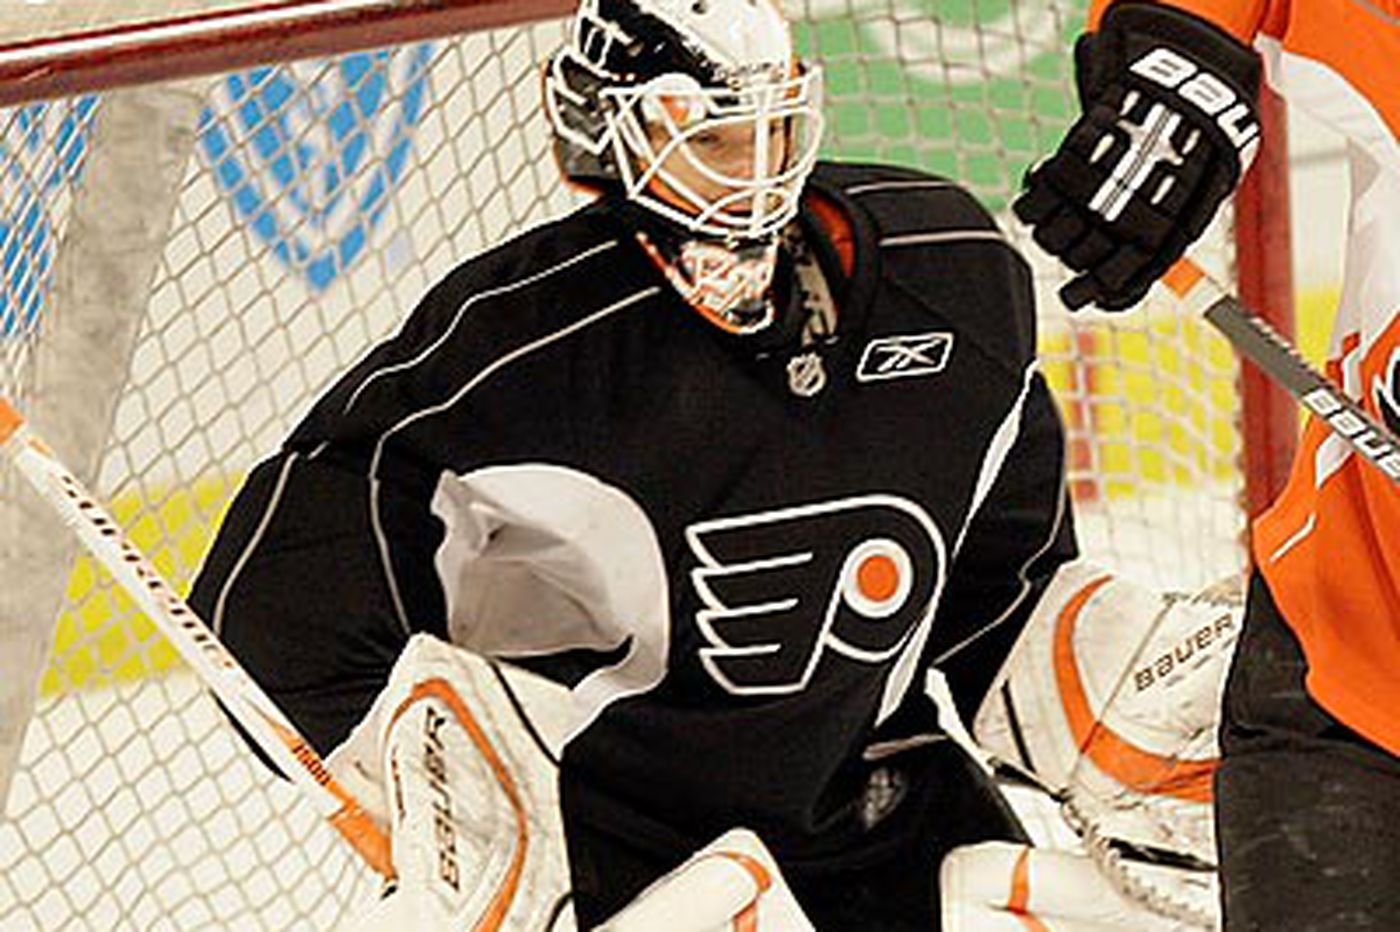 New deal for Flyers' Backlund